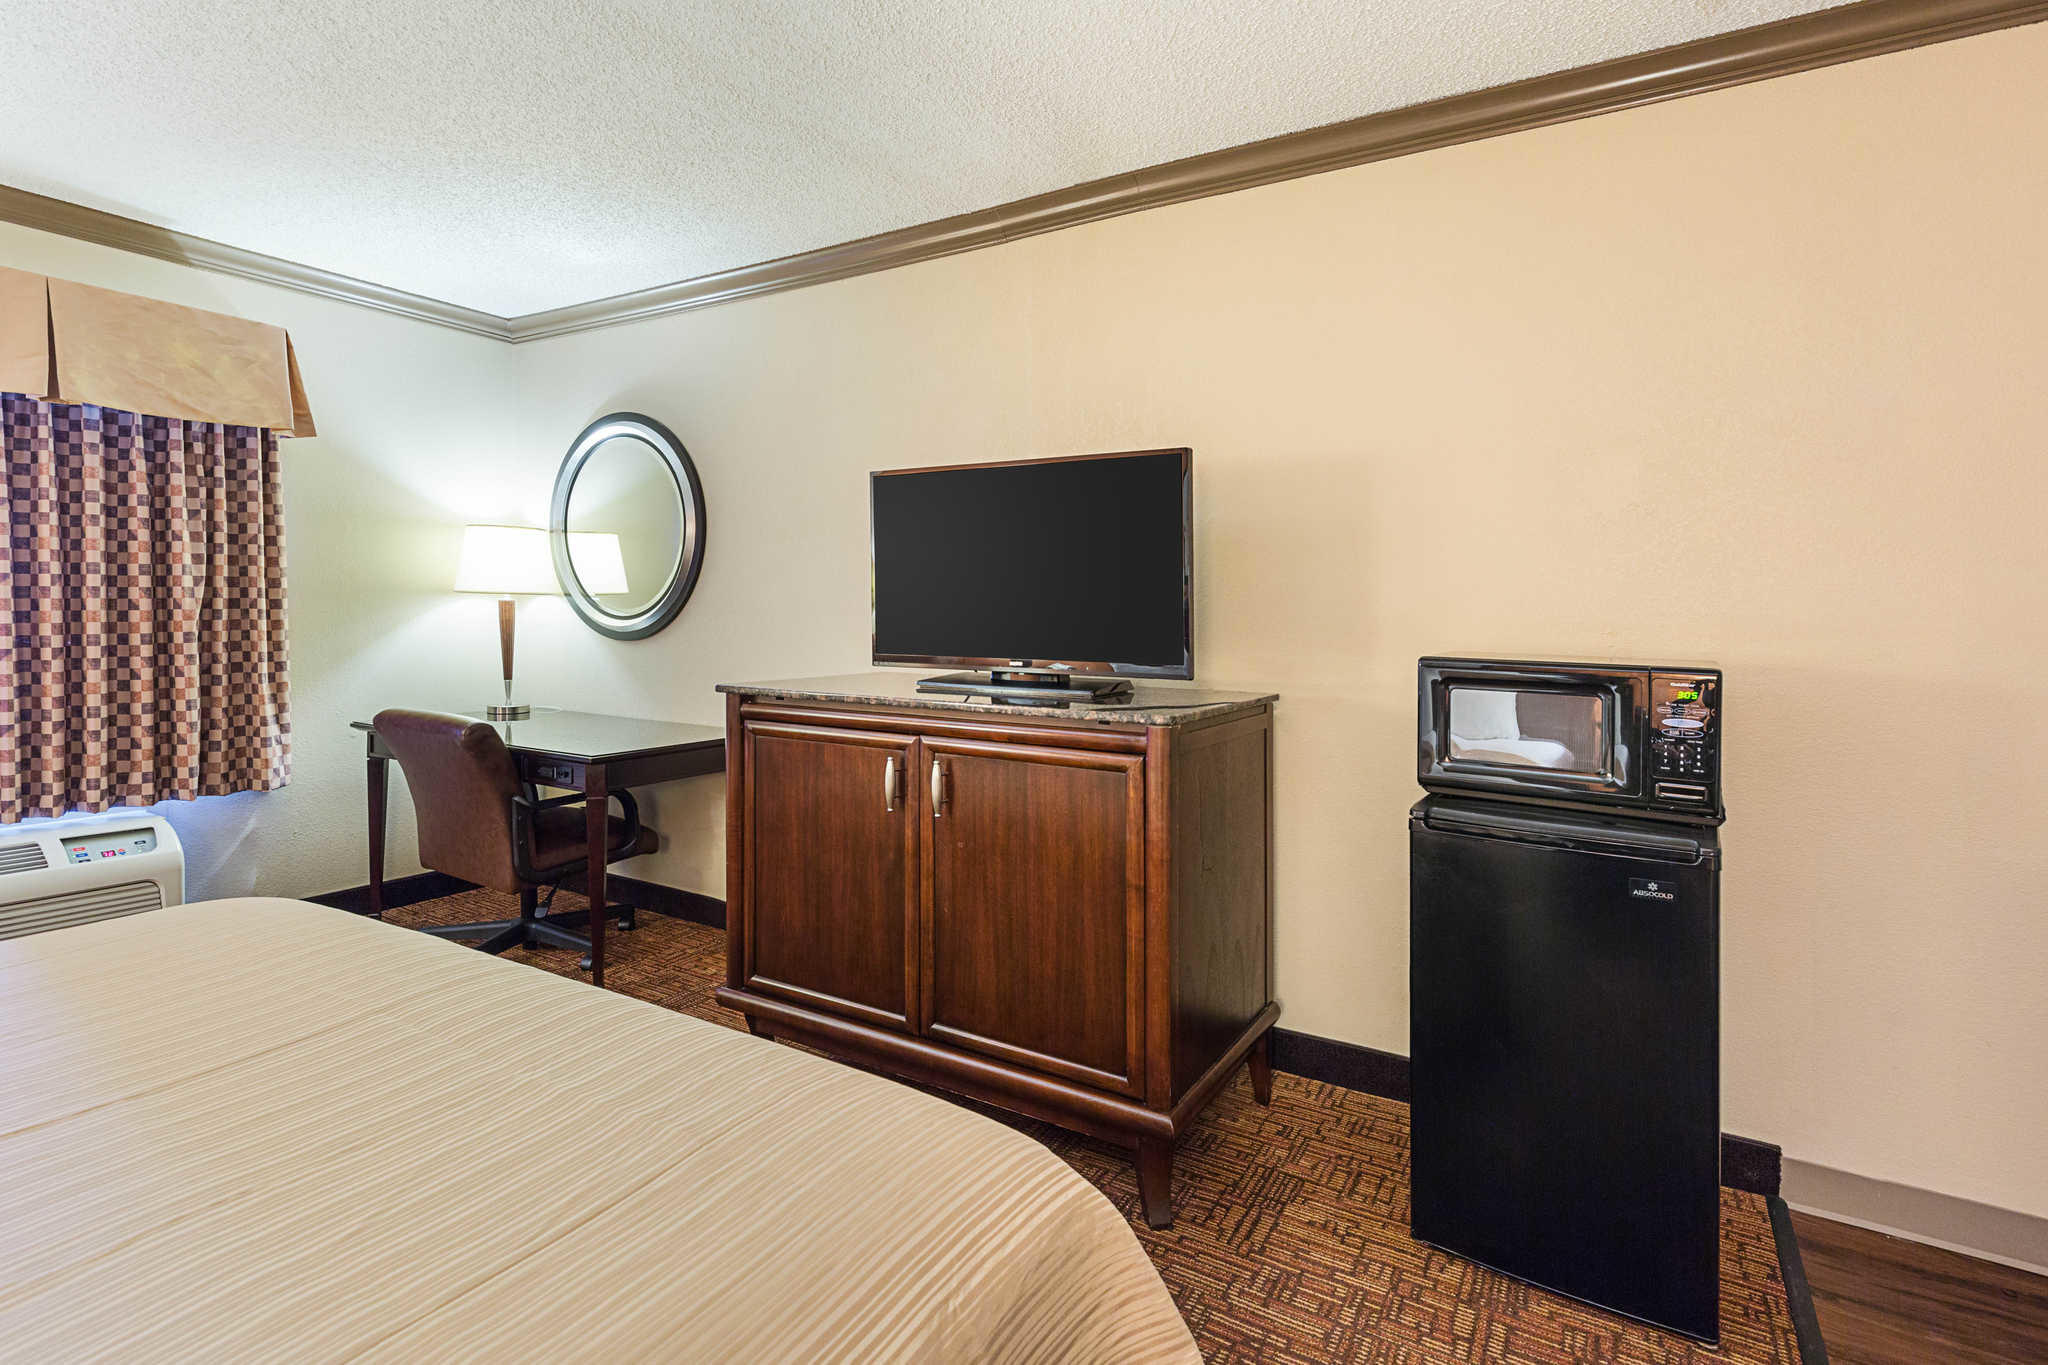 Quality inn suites coupons beaumont tx near me 8coupons for Q furniture beaumont texas